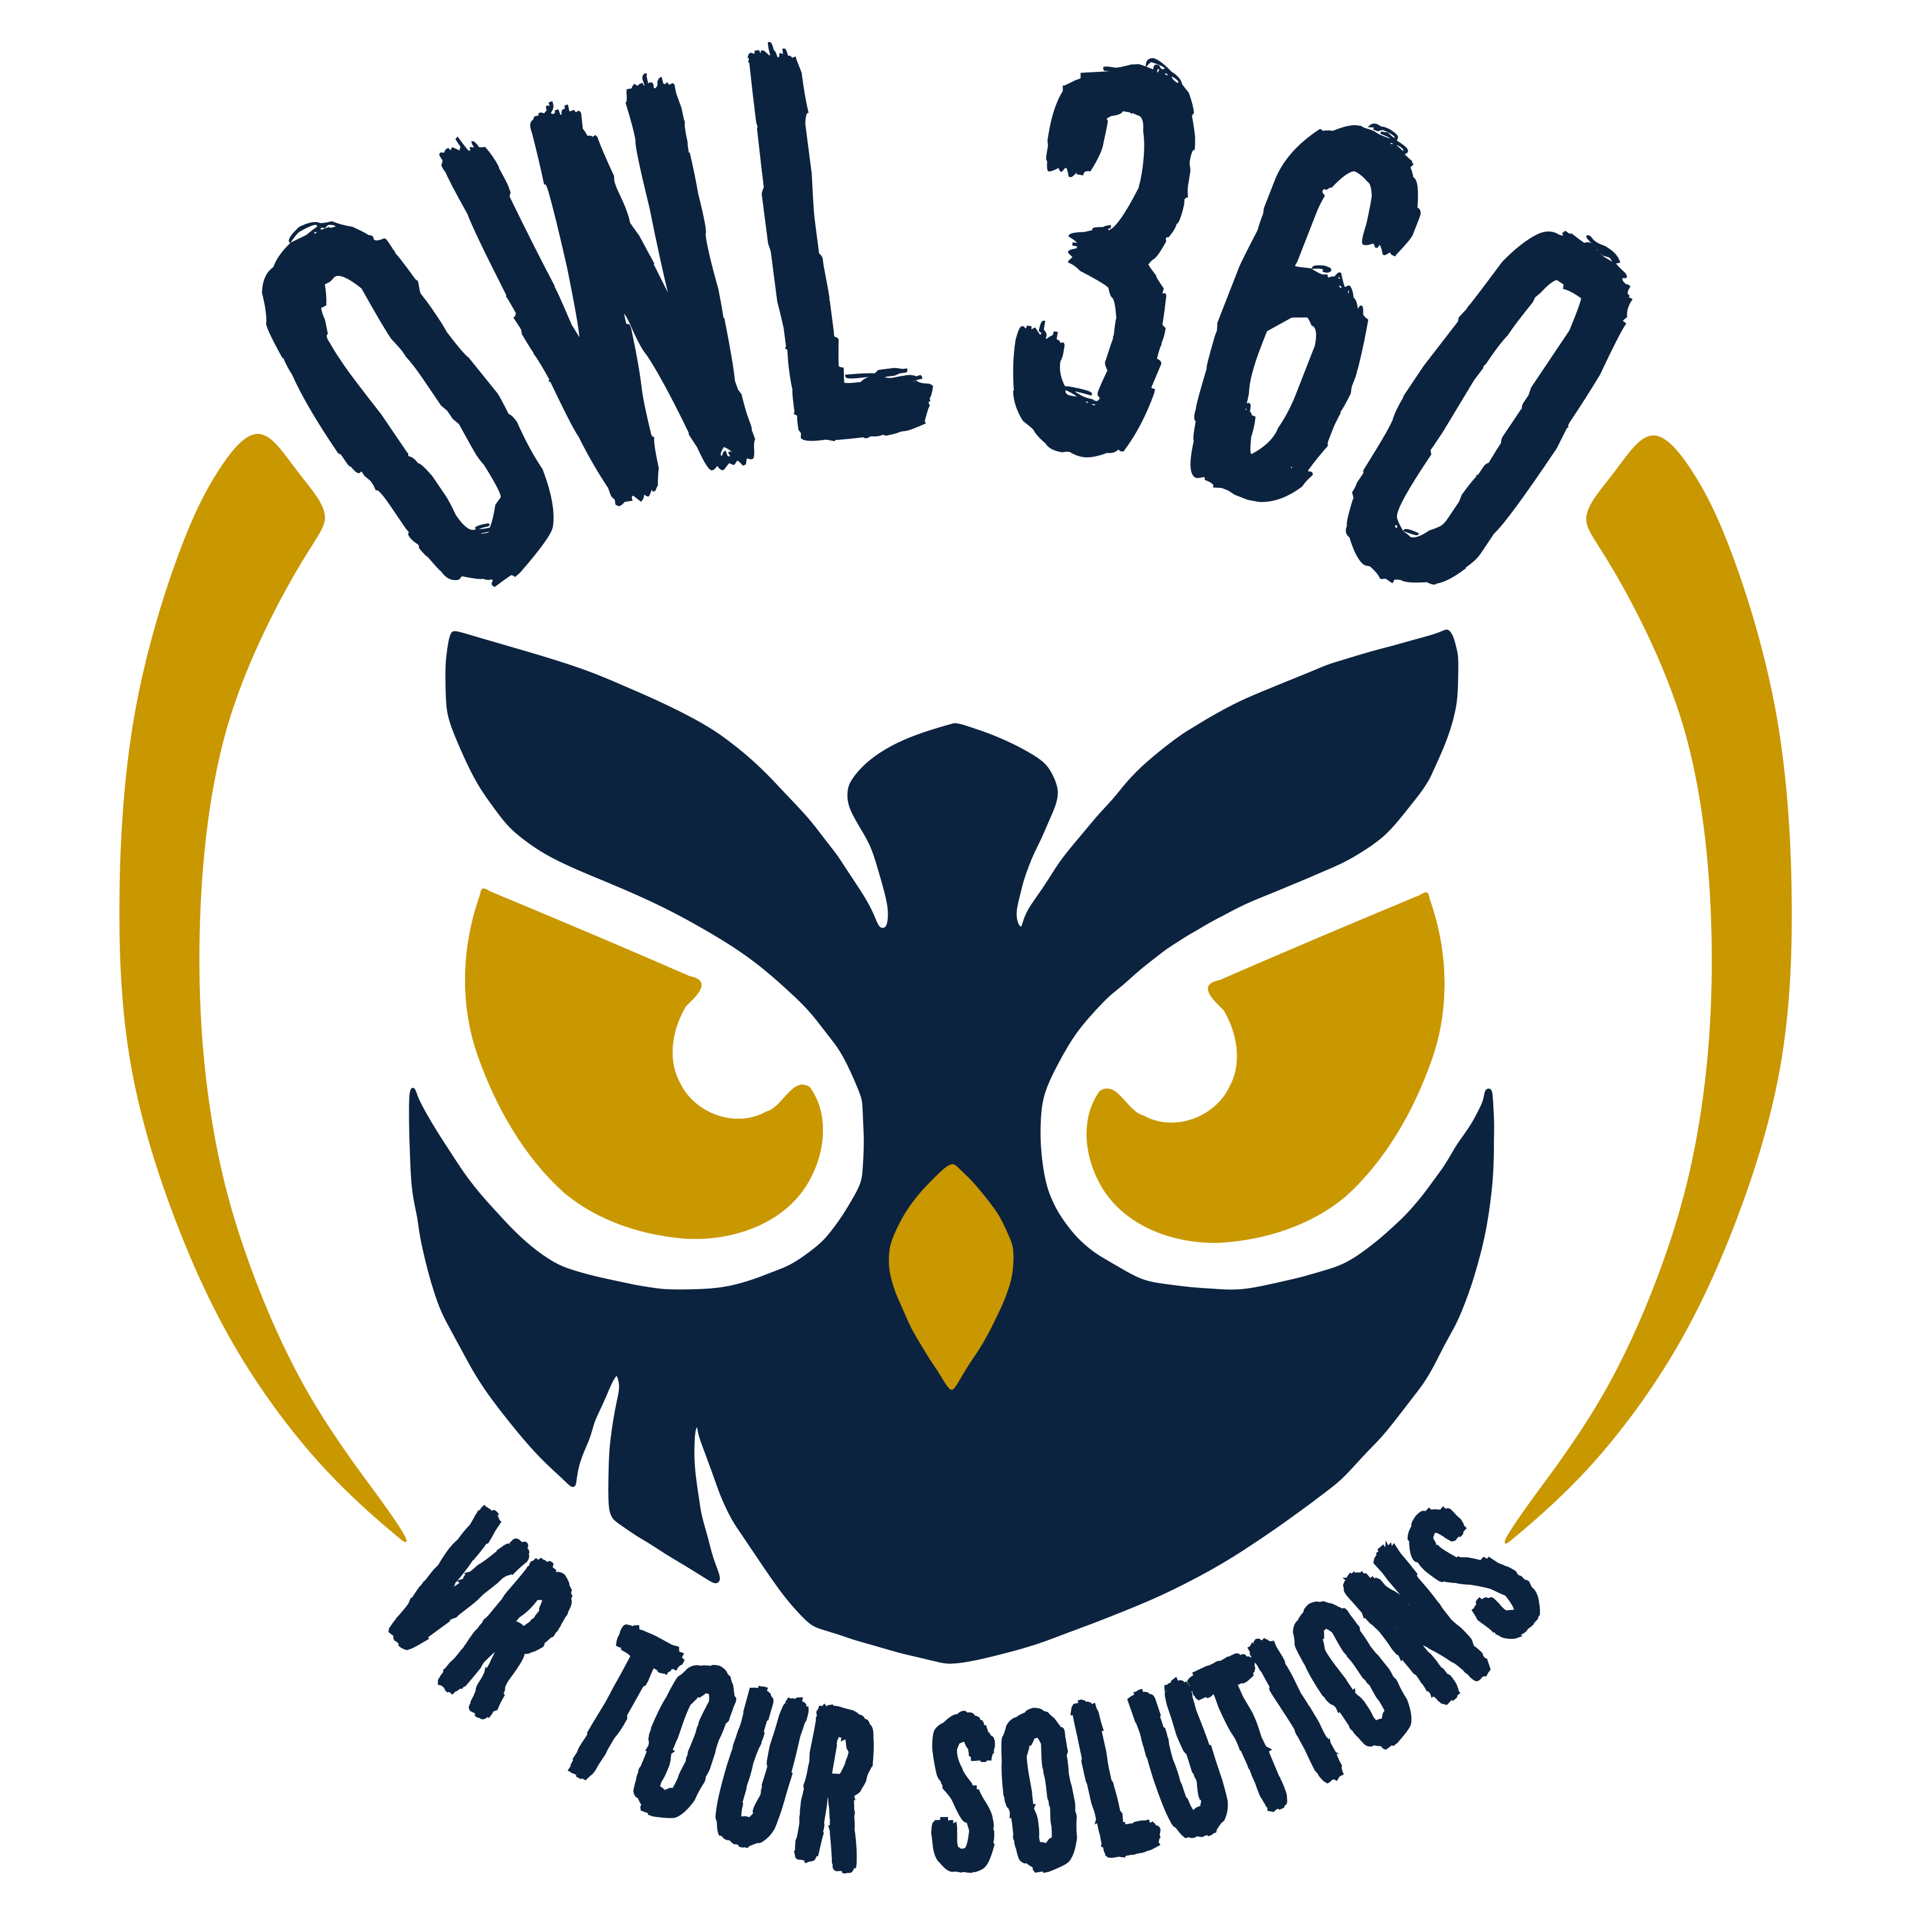 Owl 360 VR Tour Solutions